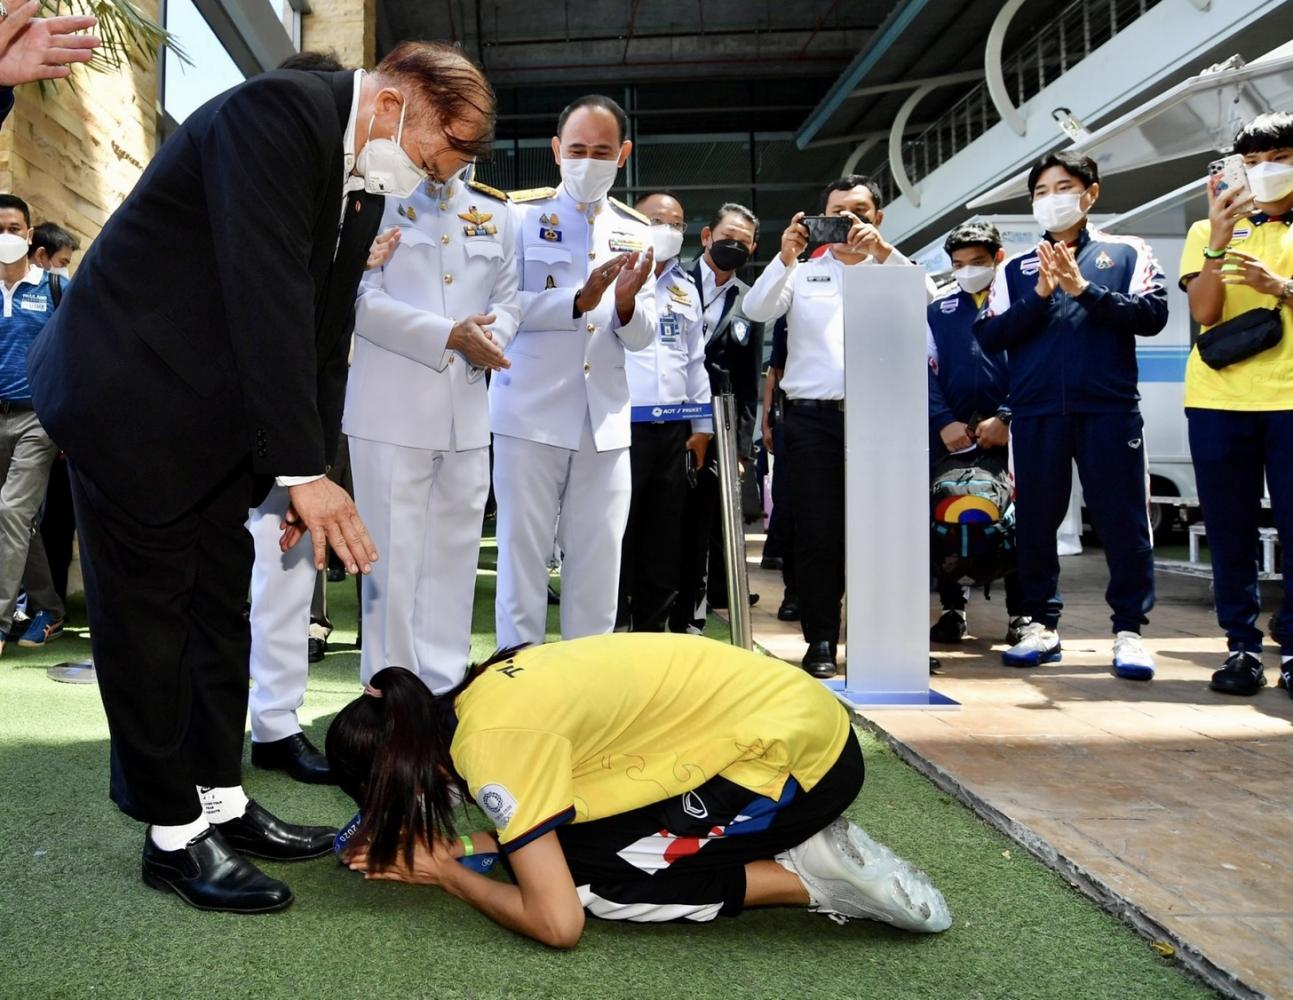 Olympic gold medallist Panipak Wongpattanakit prostrates in front of her father in Phuket as she arrives home following her win in Tokyo. Left Panipak shows off her gold medal as she waves from a Phuket bus. Photos by Phuket public relations office